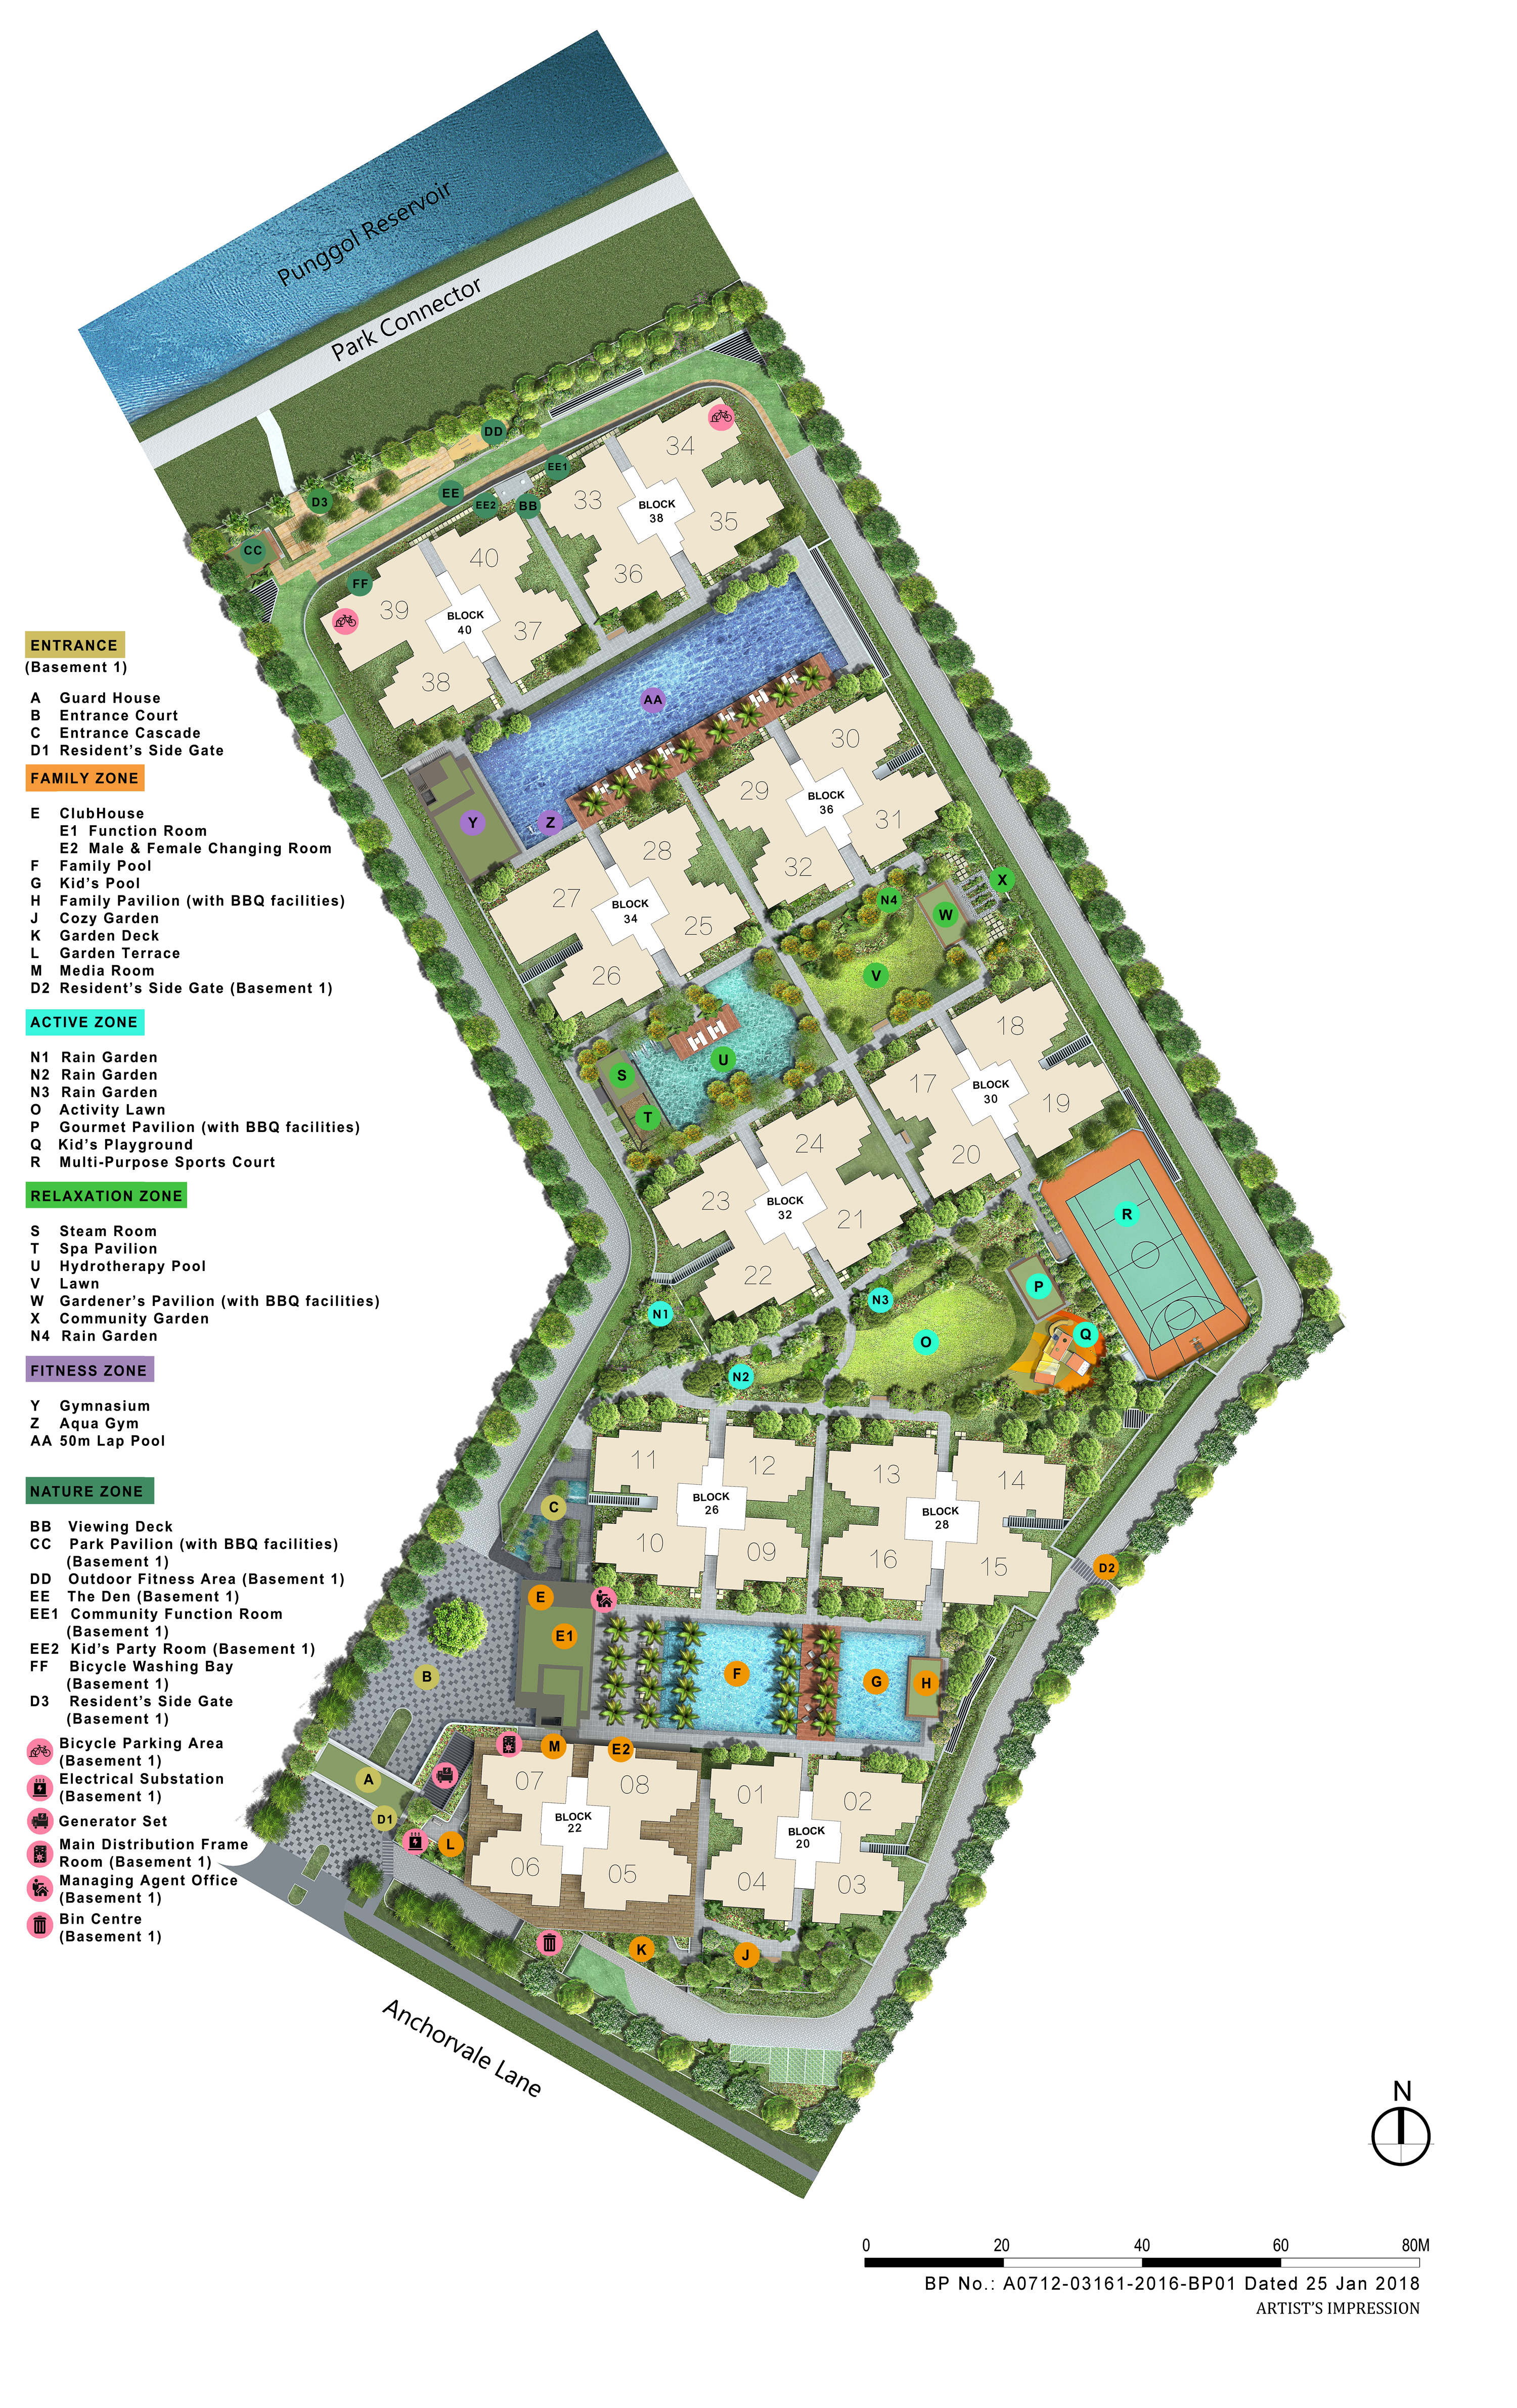 RCR_site_plan_with_labeling_JPEG1